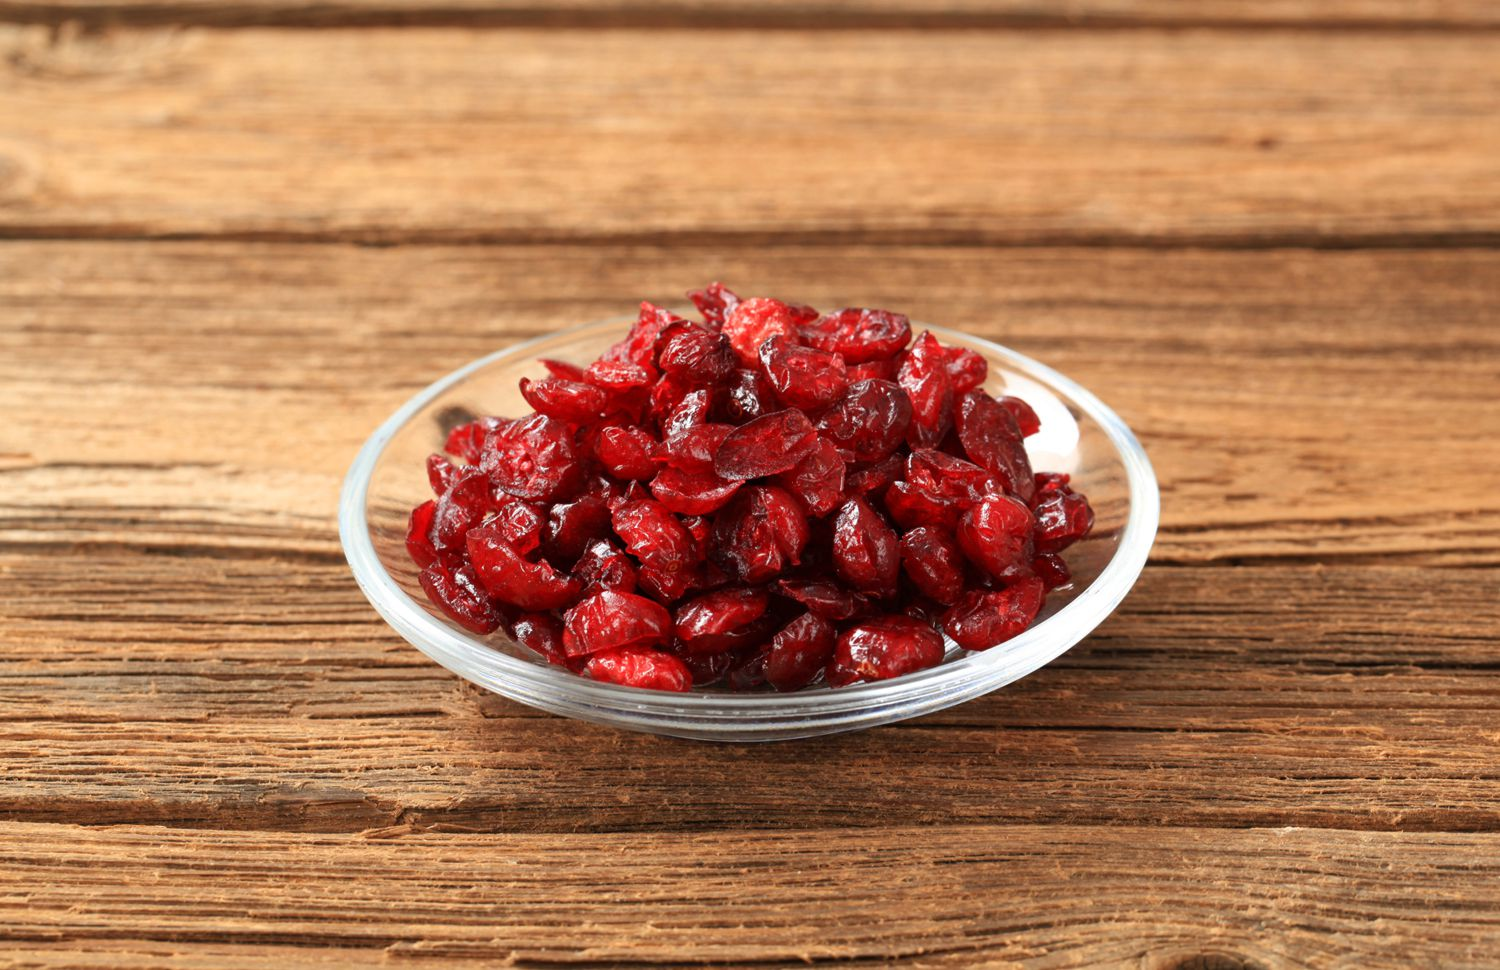 are dried cranberries good for a low-carb diet?